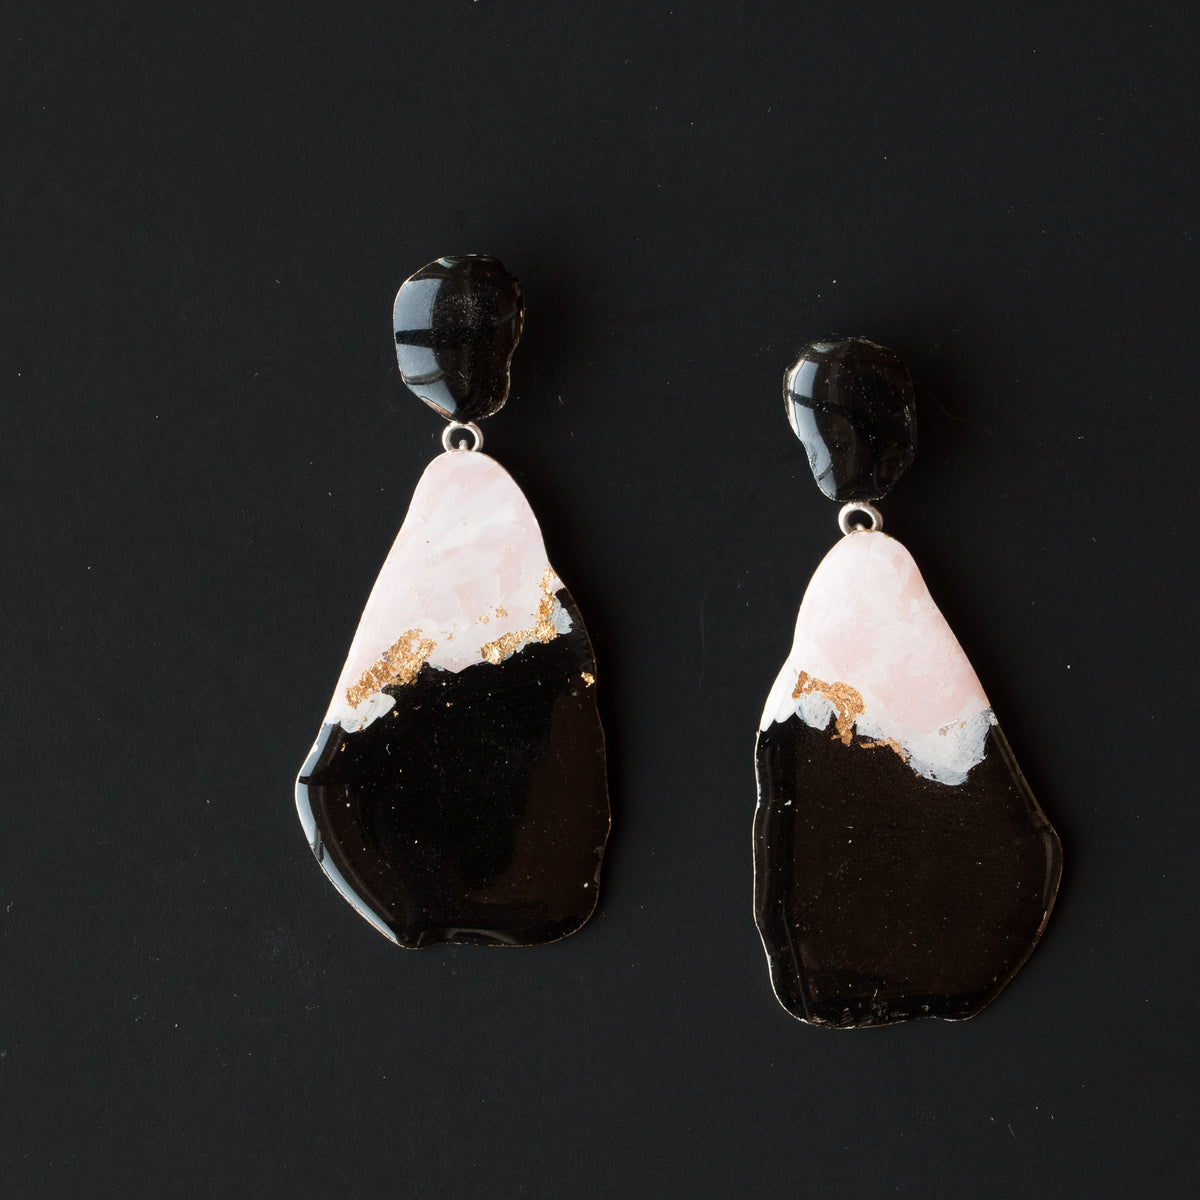 729 - Large Pink, Black & Gold Dangle Earrings on Black Background - Sold by Chic & Basta